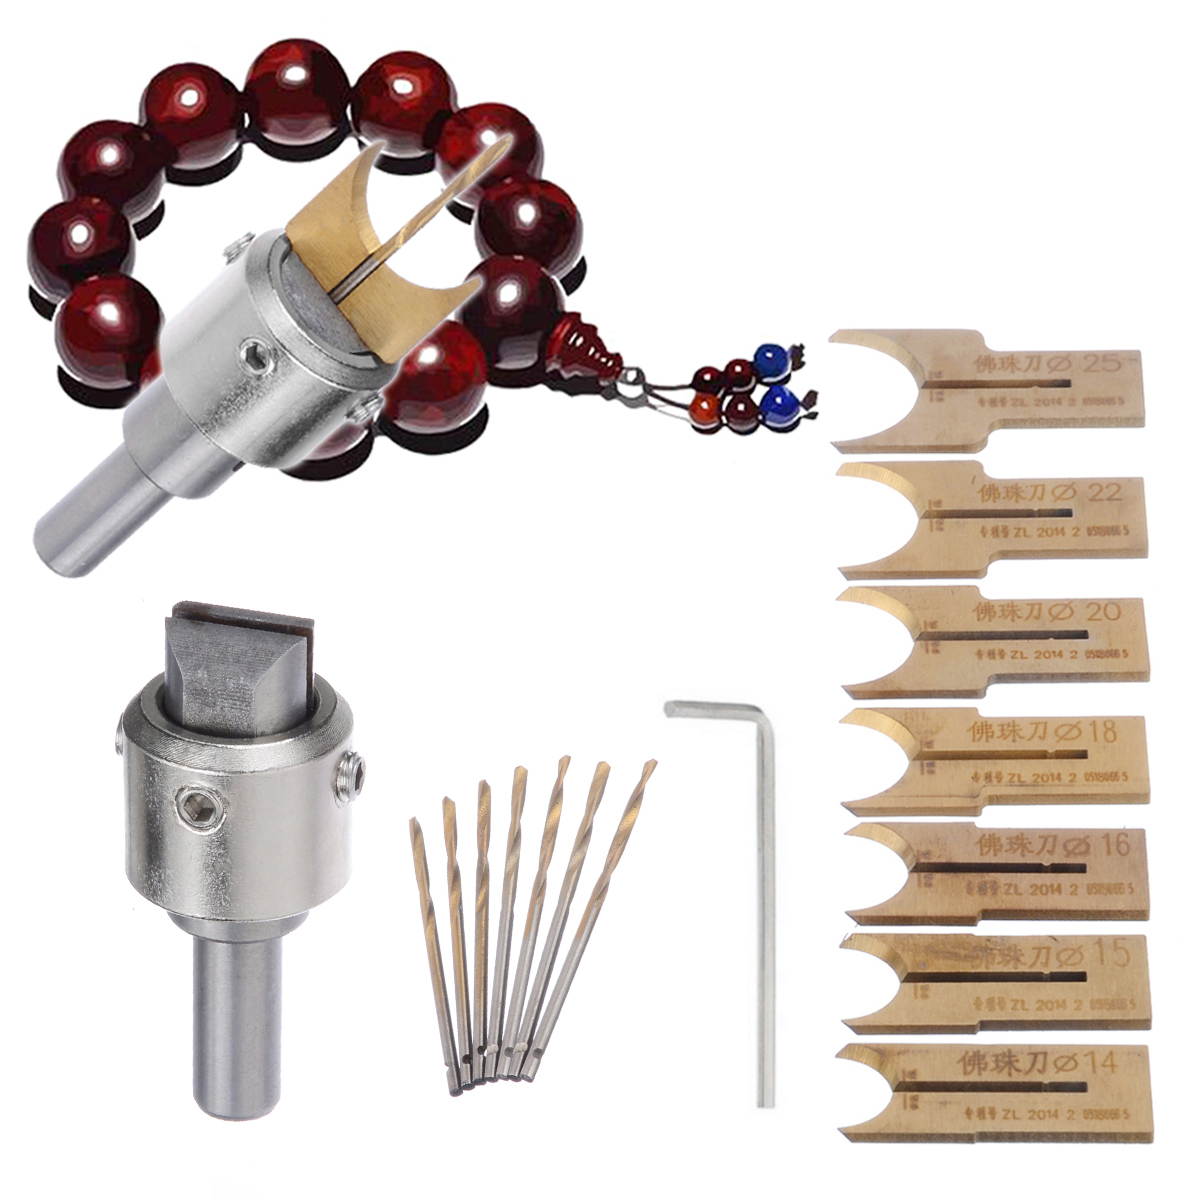 16pcs Beads Drill Bits Tool Set 14/15/16/18/20/22/25mm Carbide Ball Blade Milling Cutter Buddha Beads Router Bit For Woodworking